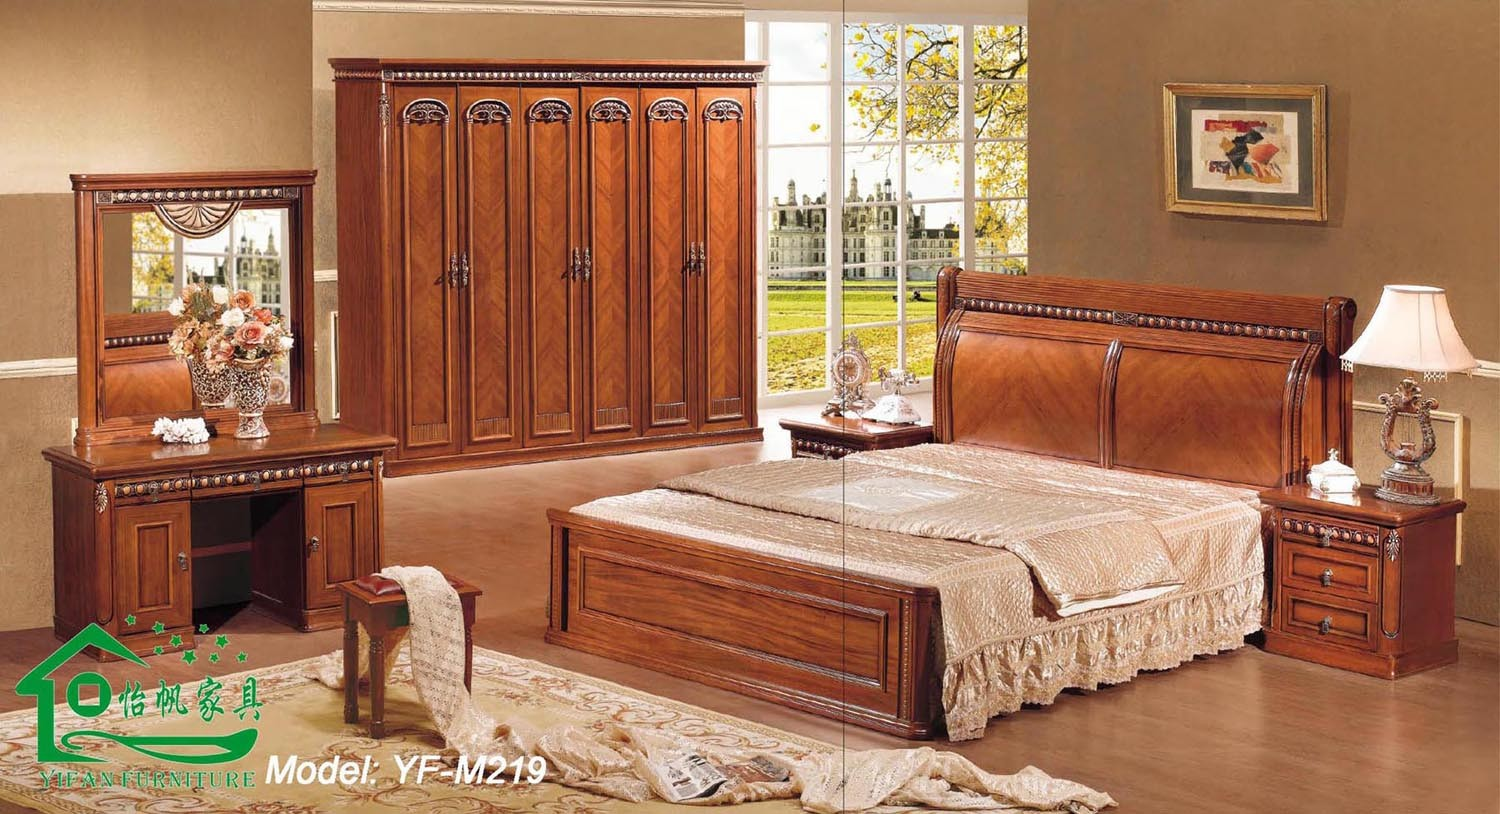 Wooden bedroom furniture with 80 inch length wood bed yf - Chambre a coucher en bois ...